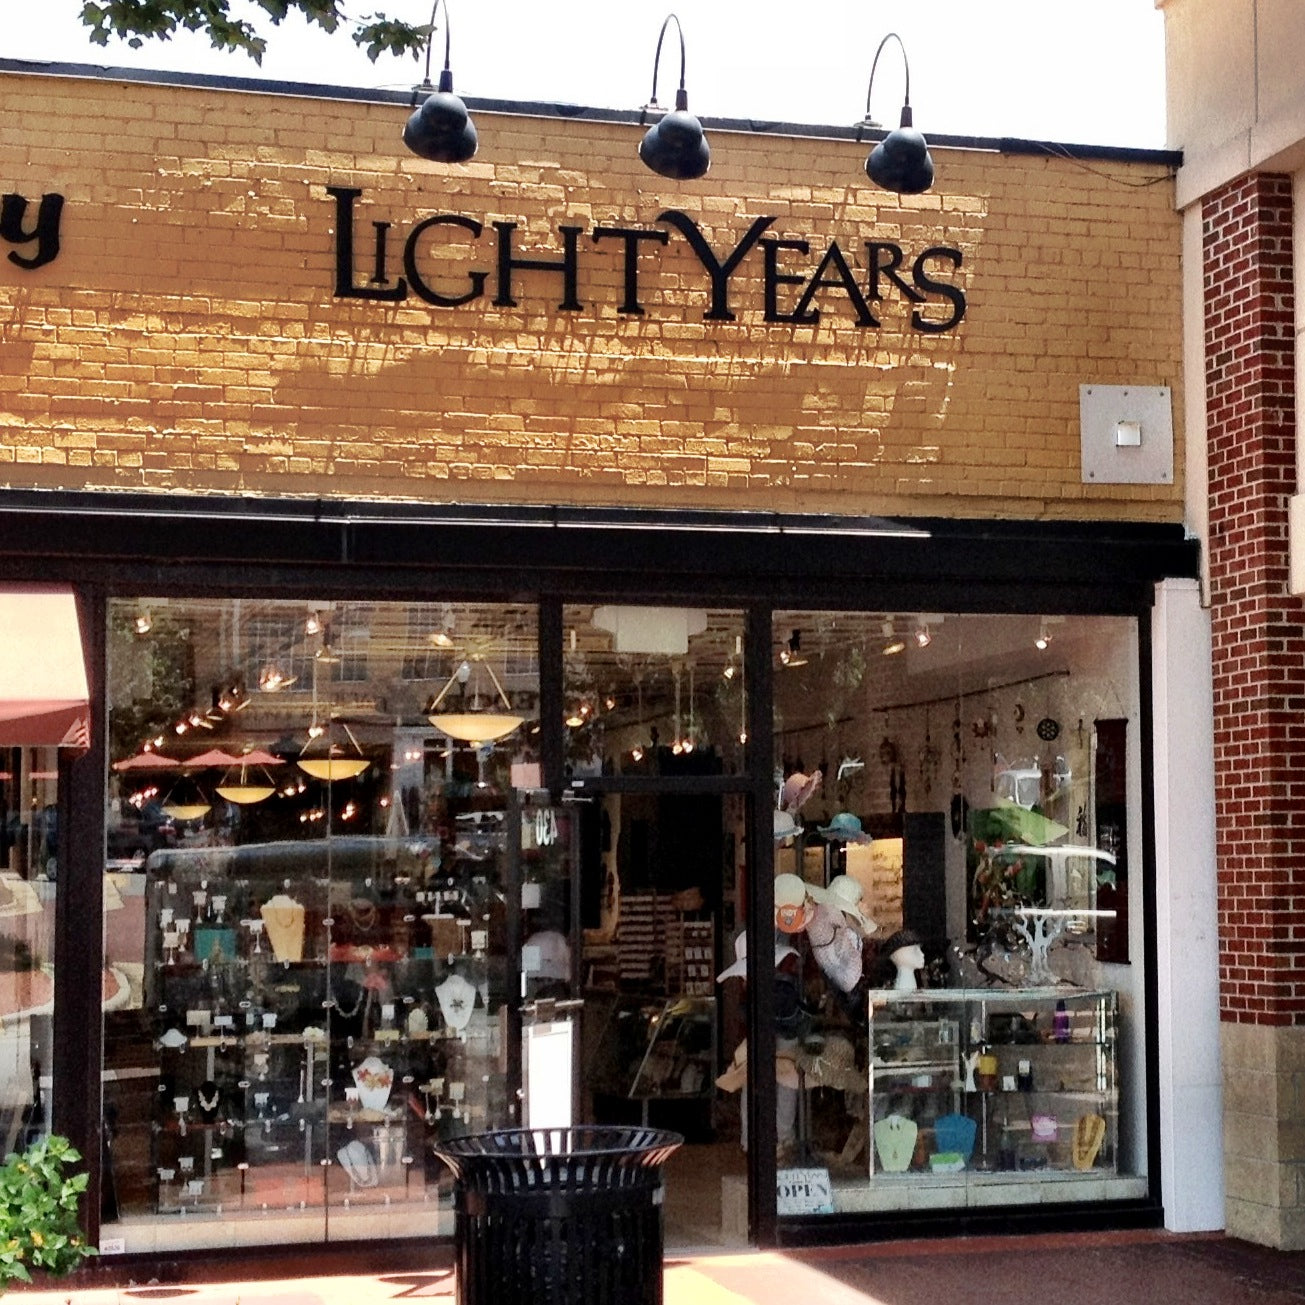 Image of the Light Years Jewelry store in Raleigh